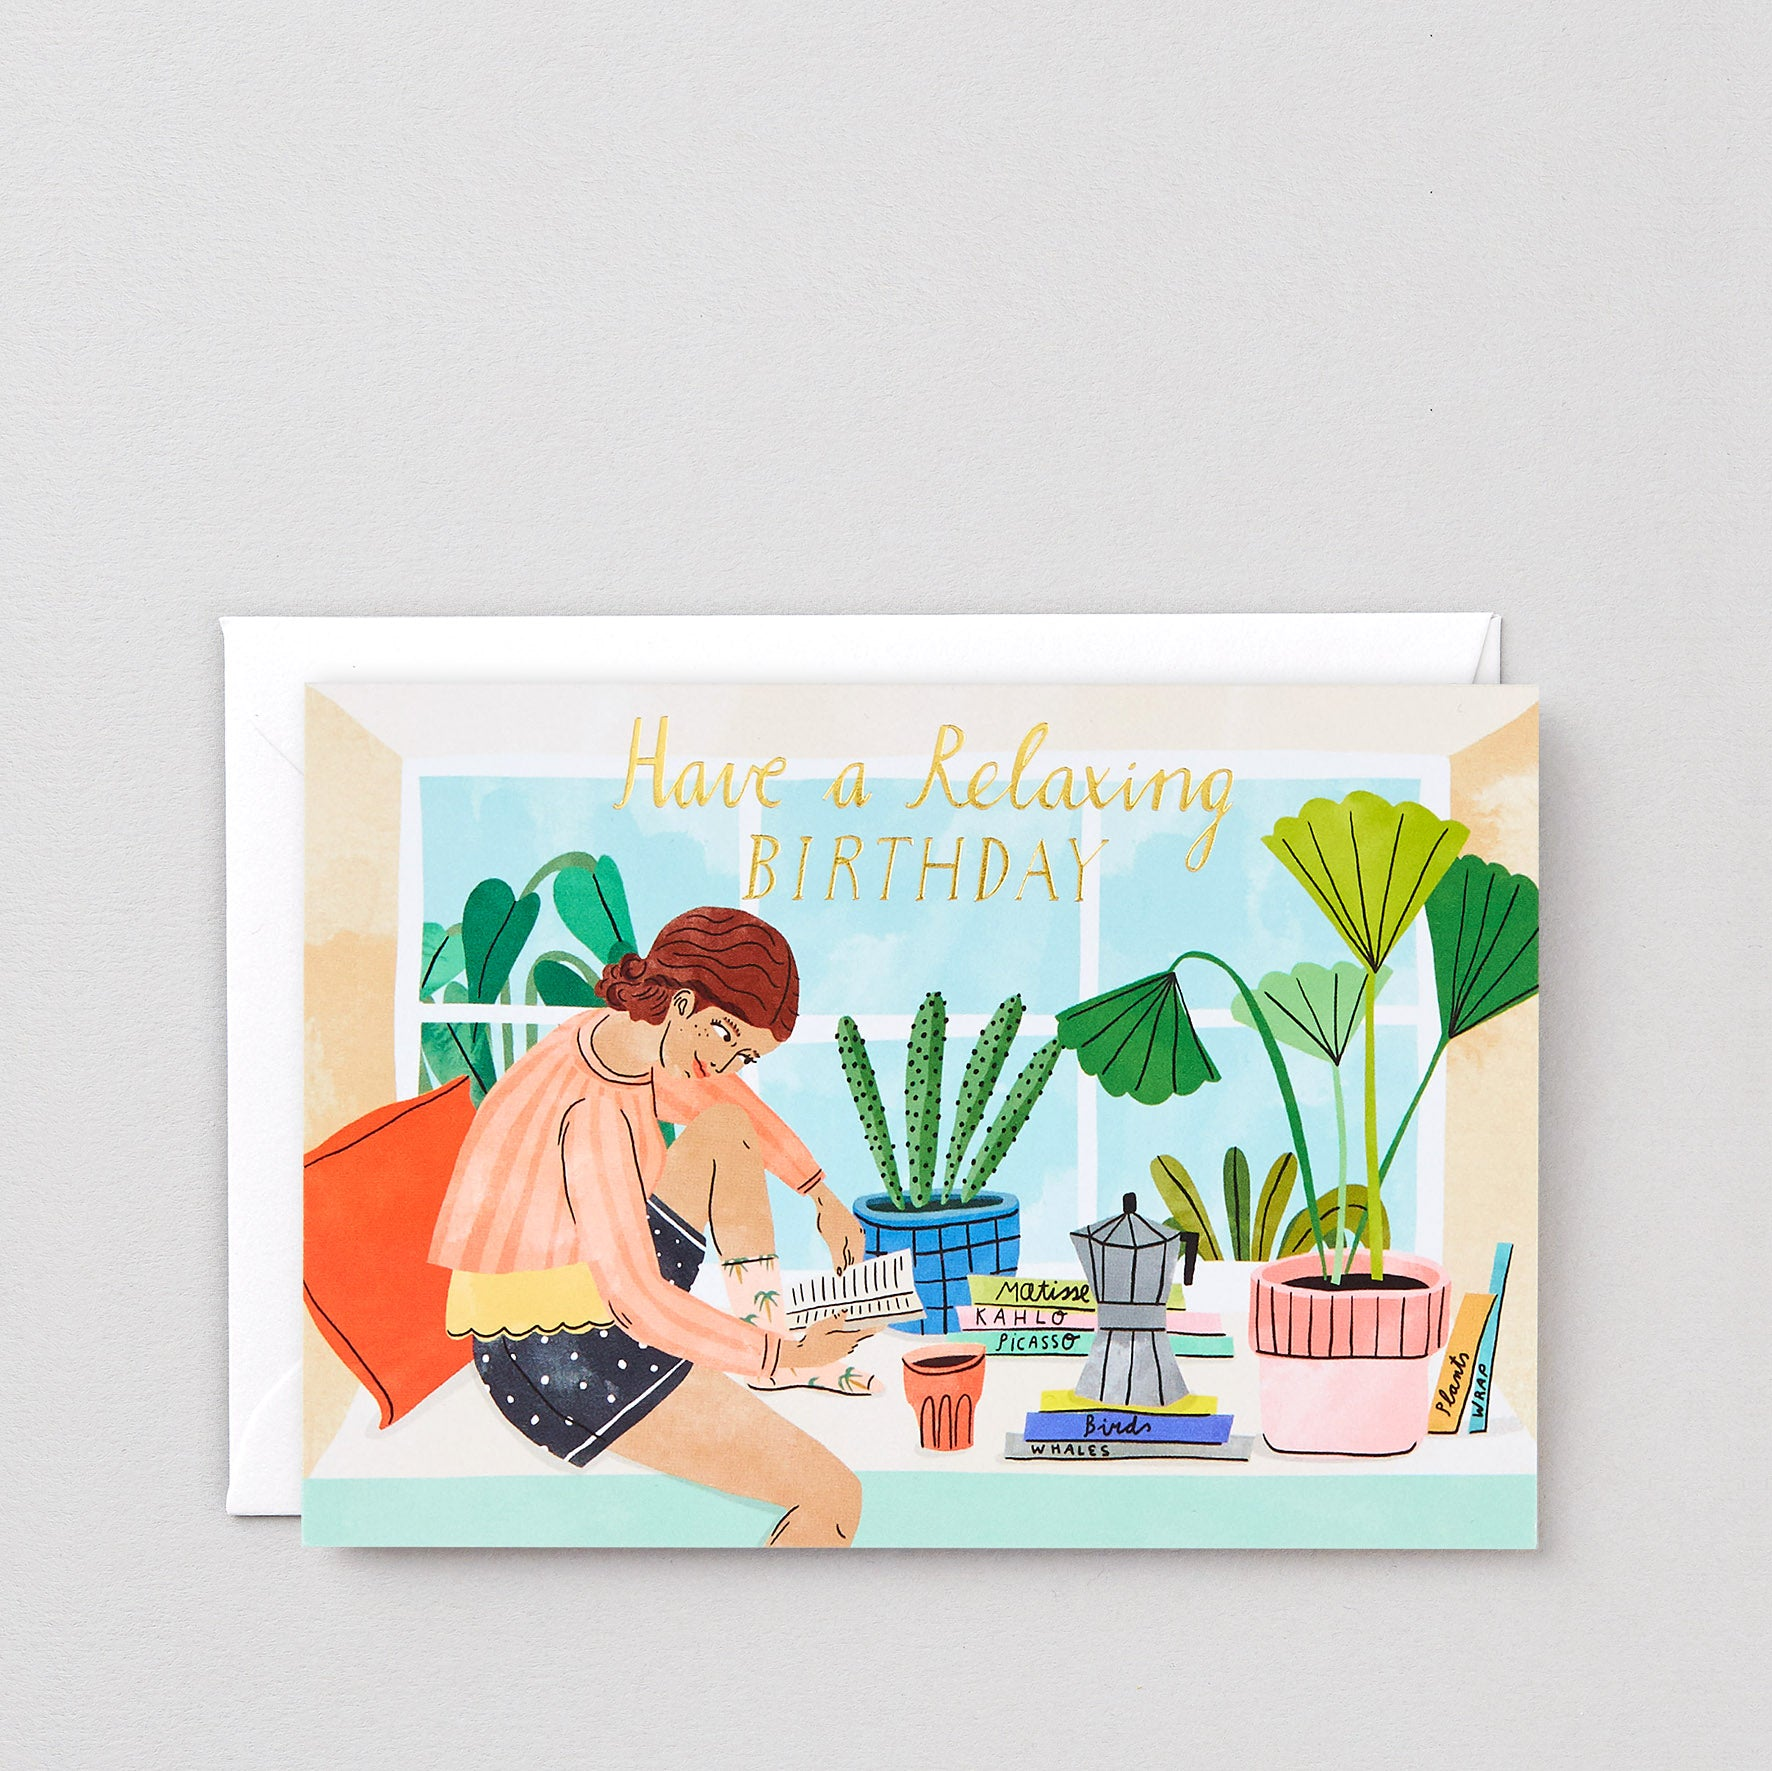 Birthday Card - Relaxing Birthday, Wrap, Handcrafted Home Goods and Gifts